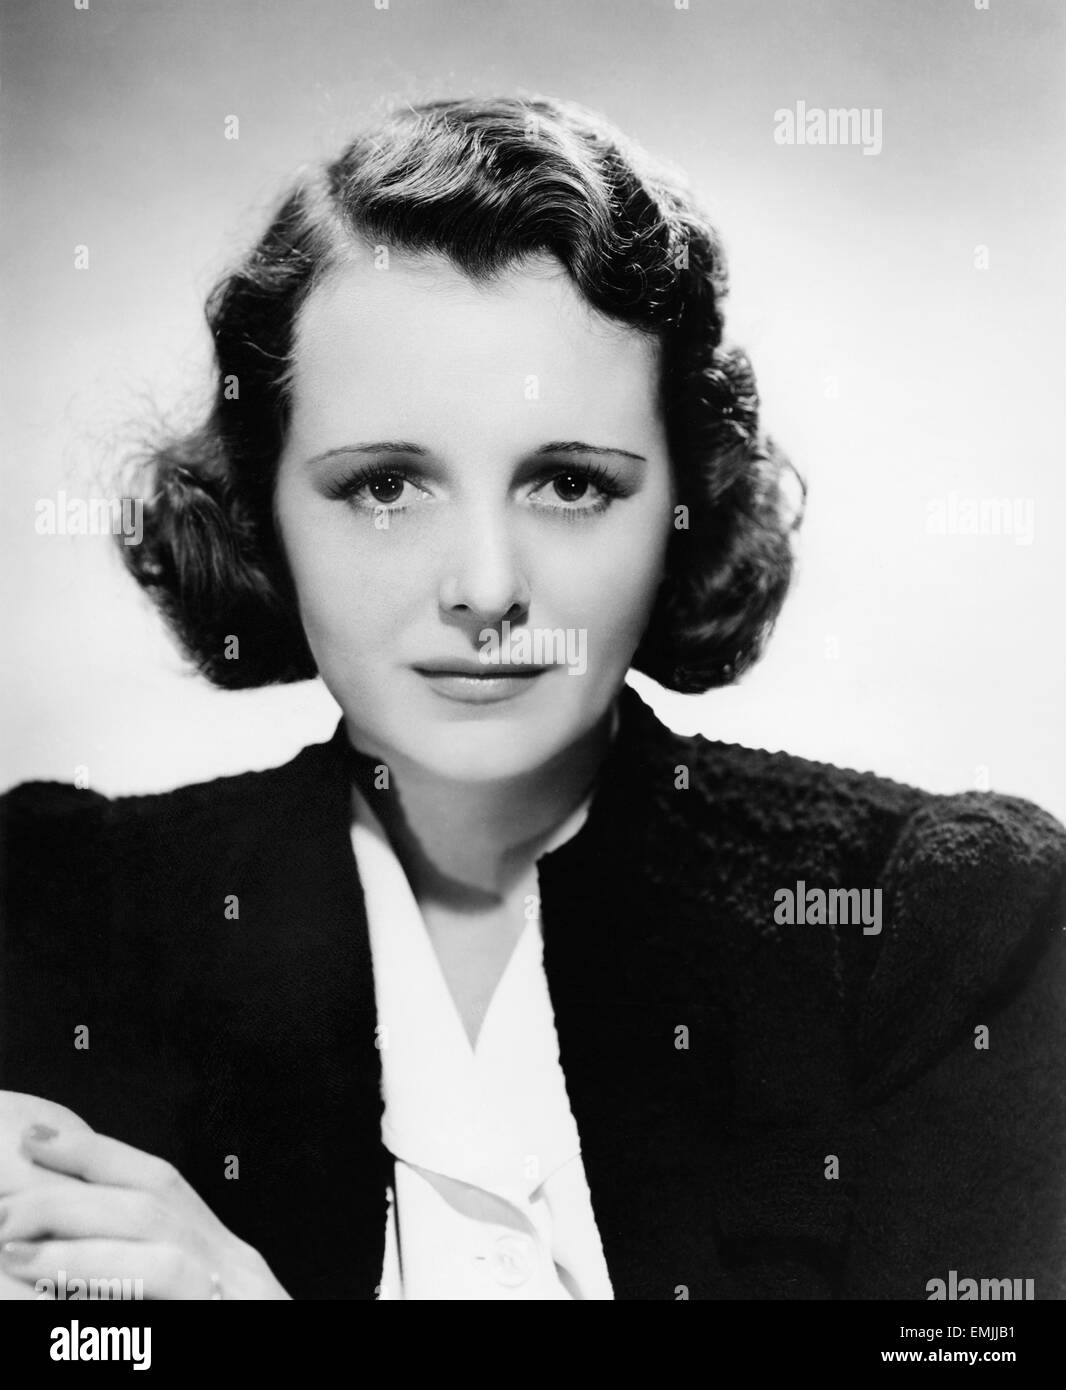 Mary Astor, Publicity Portrait for the Film 'Listen Darling', 1938 - Stock Image